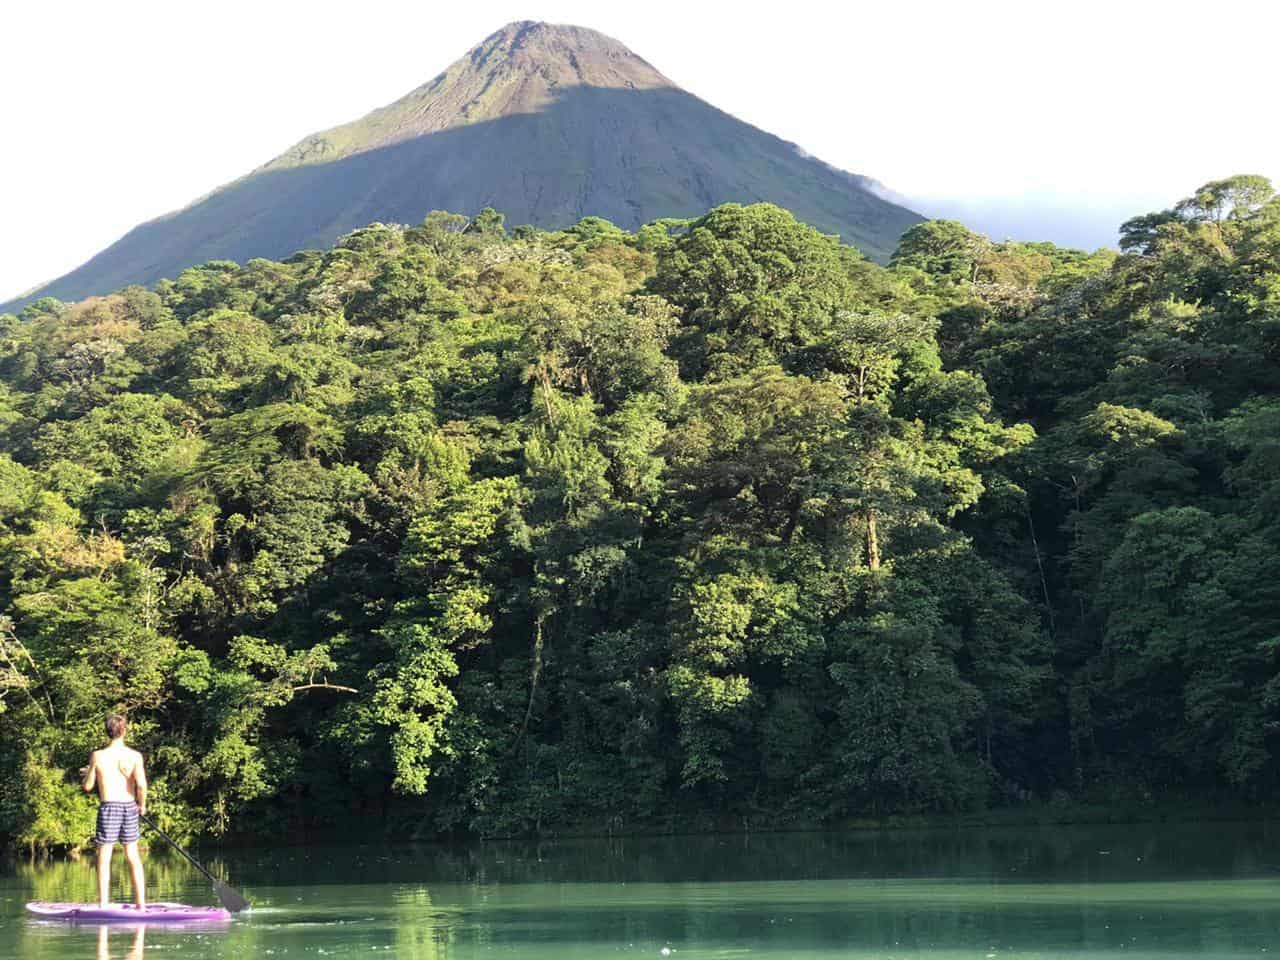 A tourist enjoys Lake Arenal in the shadows of the volcano by the same name.